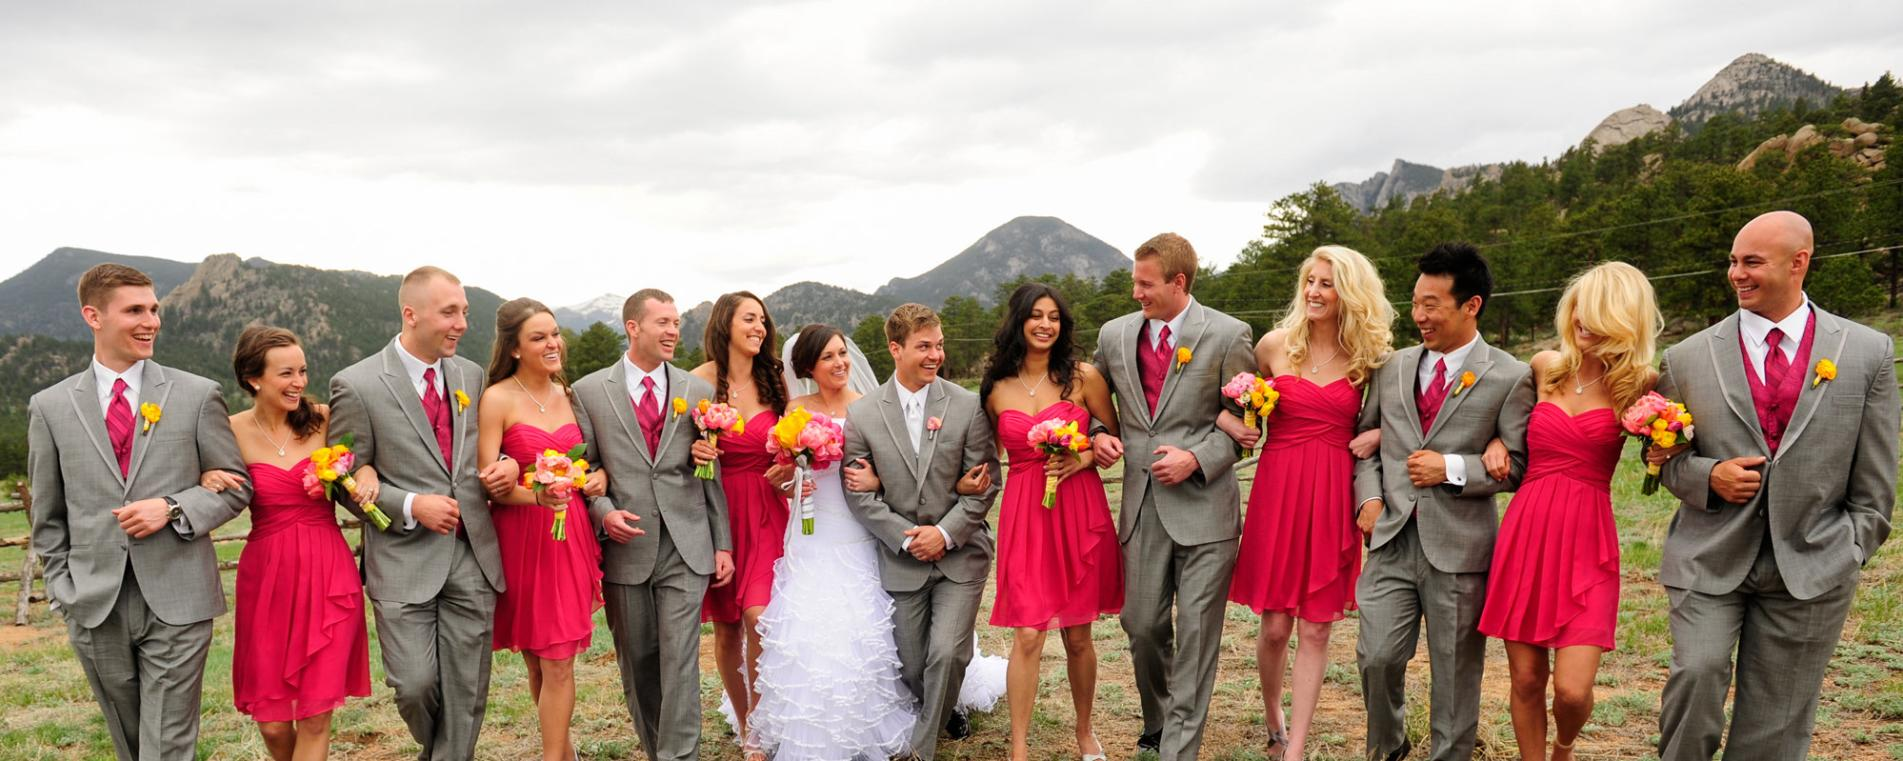 Celebrate with Large or Small Weddings in Estes Park